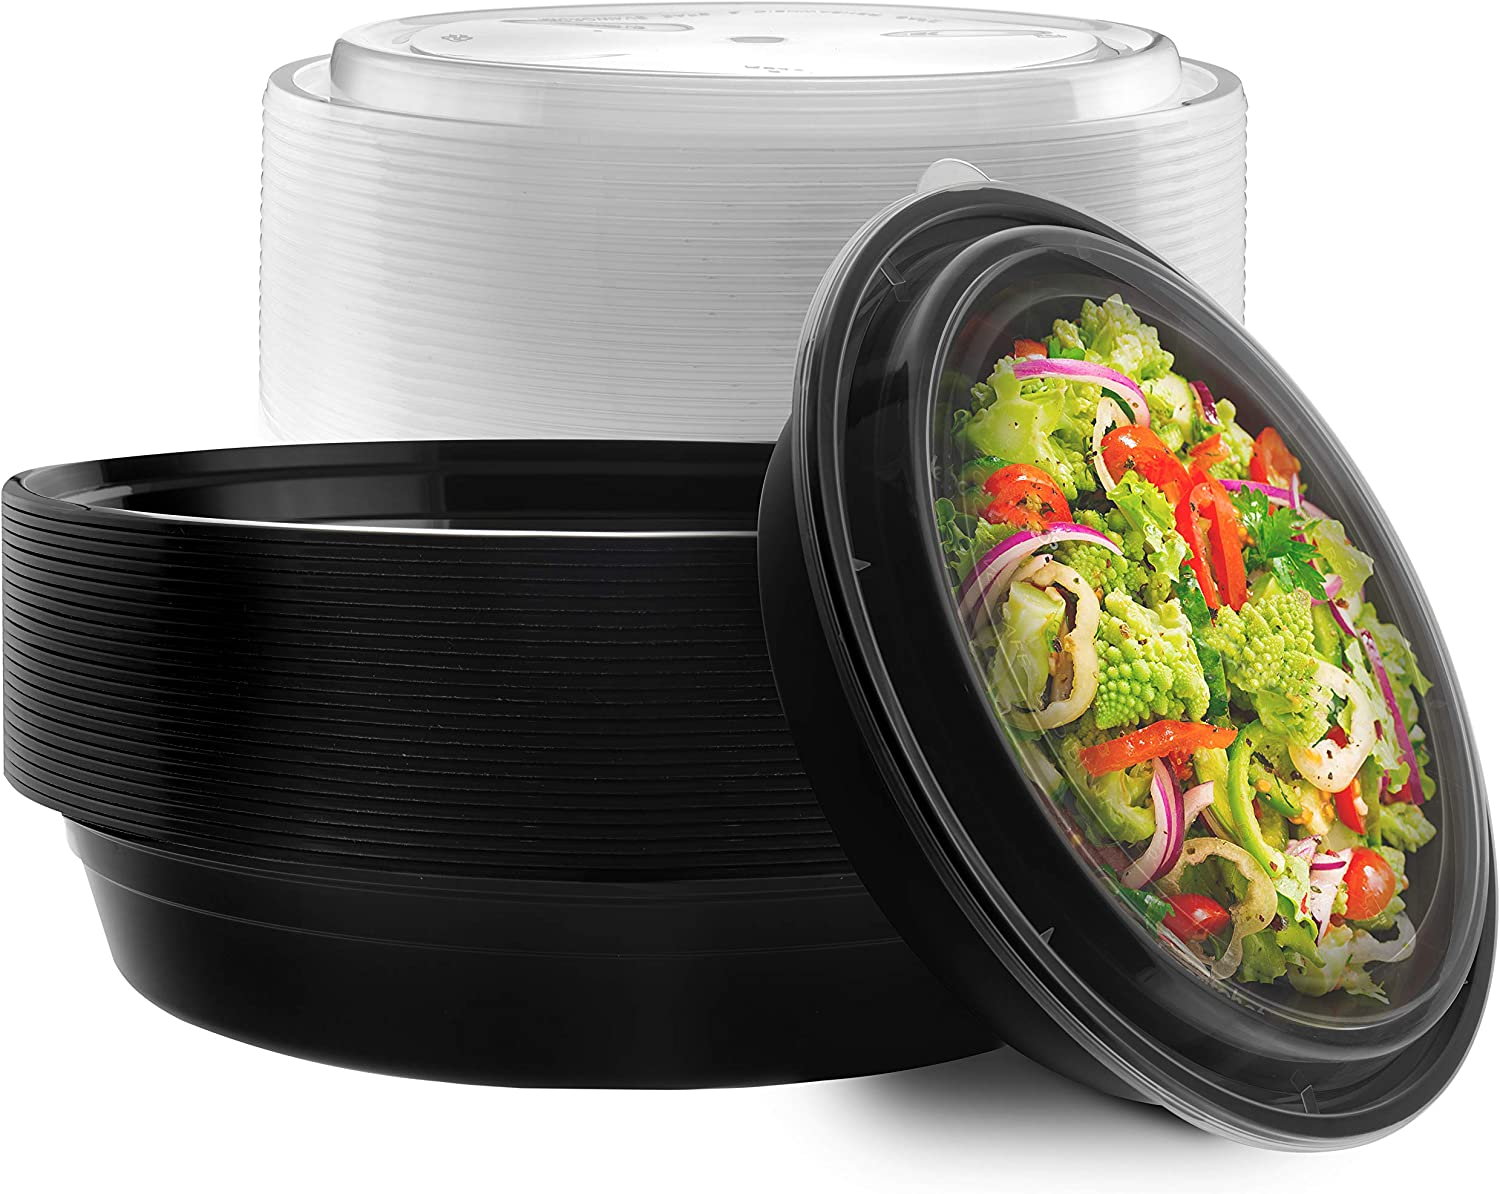 NYHI 9 IN Round Meal Prep Food Containers | One Compartment BPA-Free Plastic Food Storage Portion Control Dishes With Lids, Reusable Bento Lunch Box Microwave Dishwasher Freezer Safe 48 ounce, 25 Pack